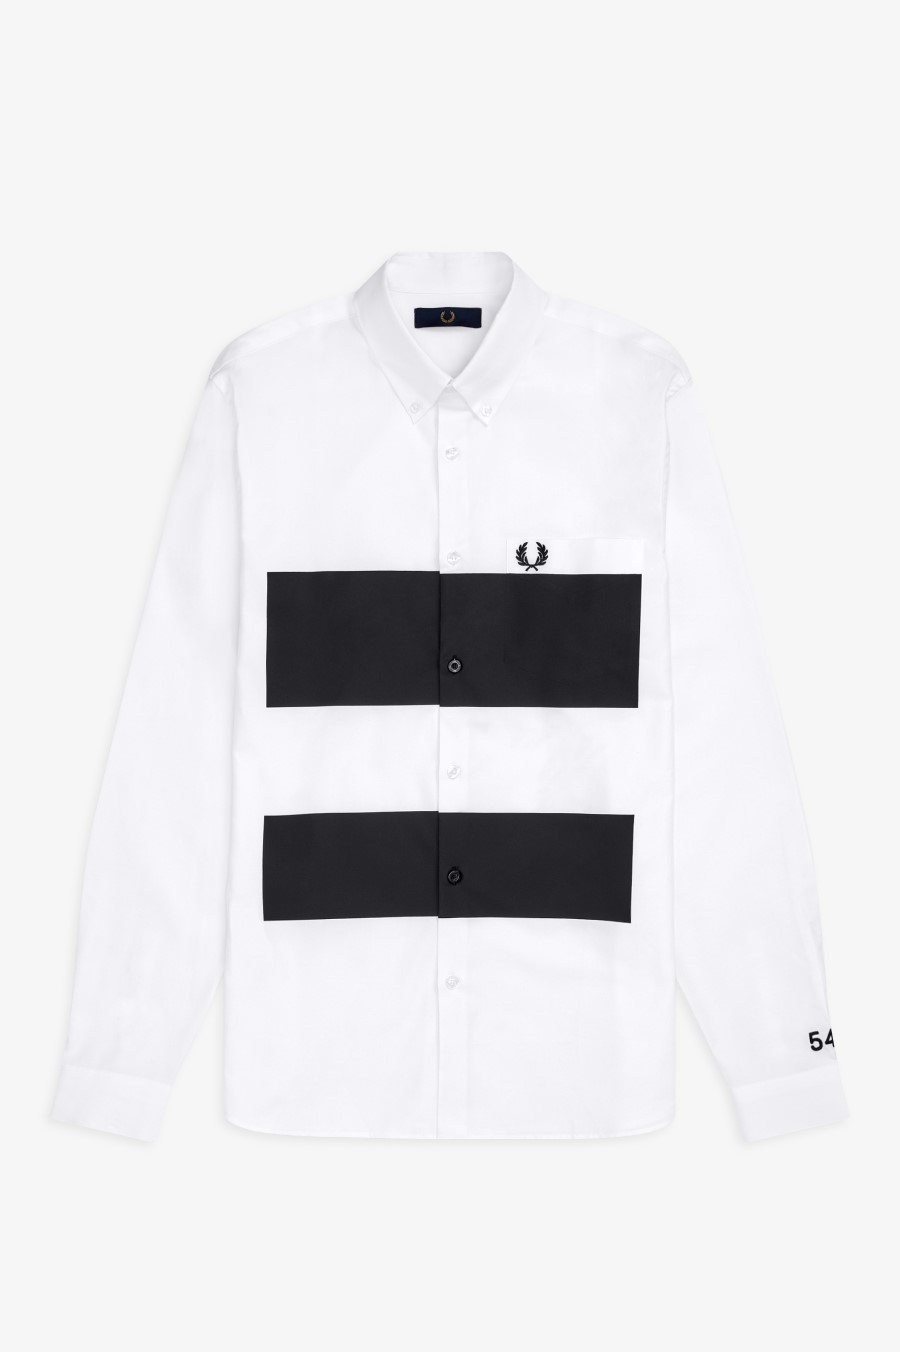 Fred Perry x Made Thought